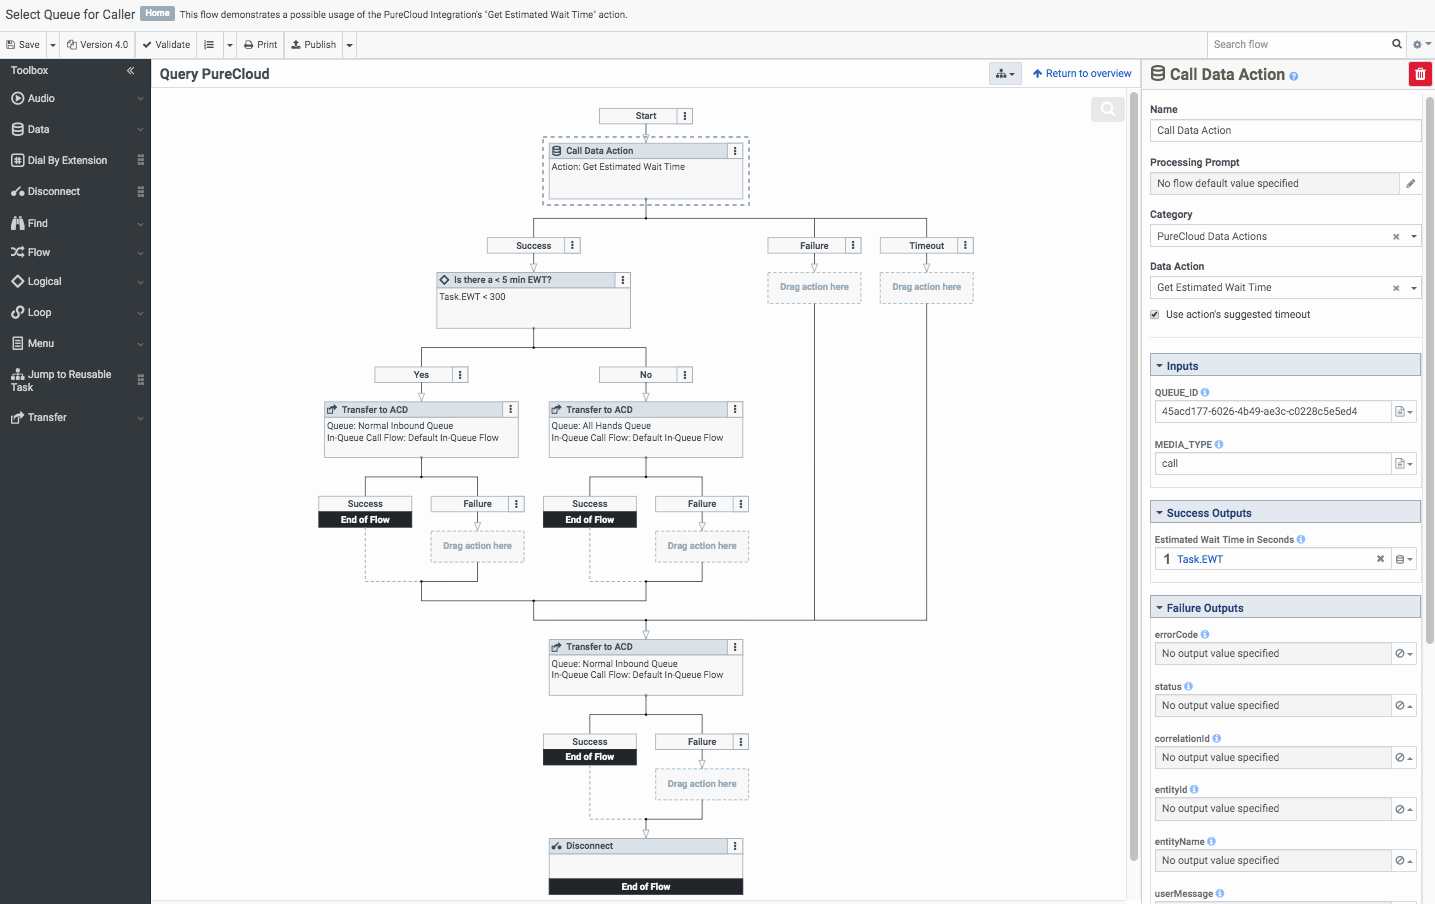 Example call flow for the PureCloud data actions integration